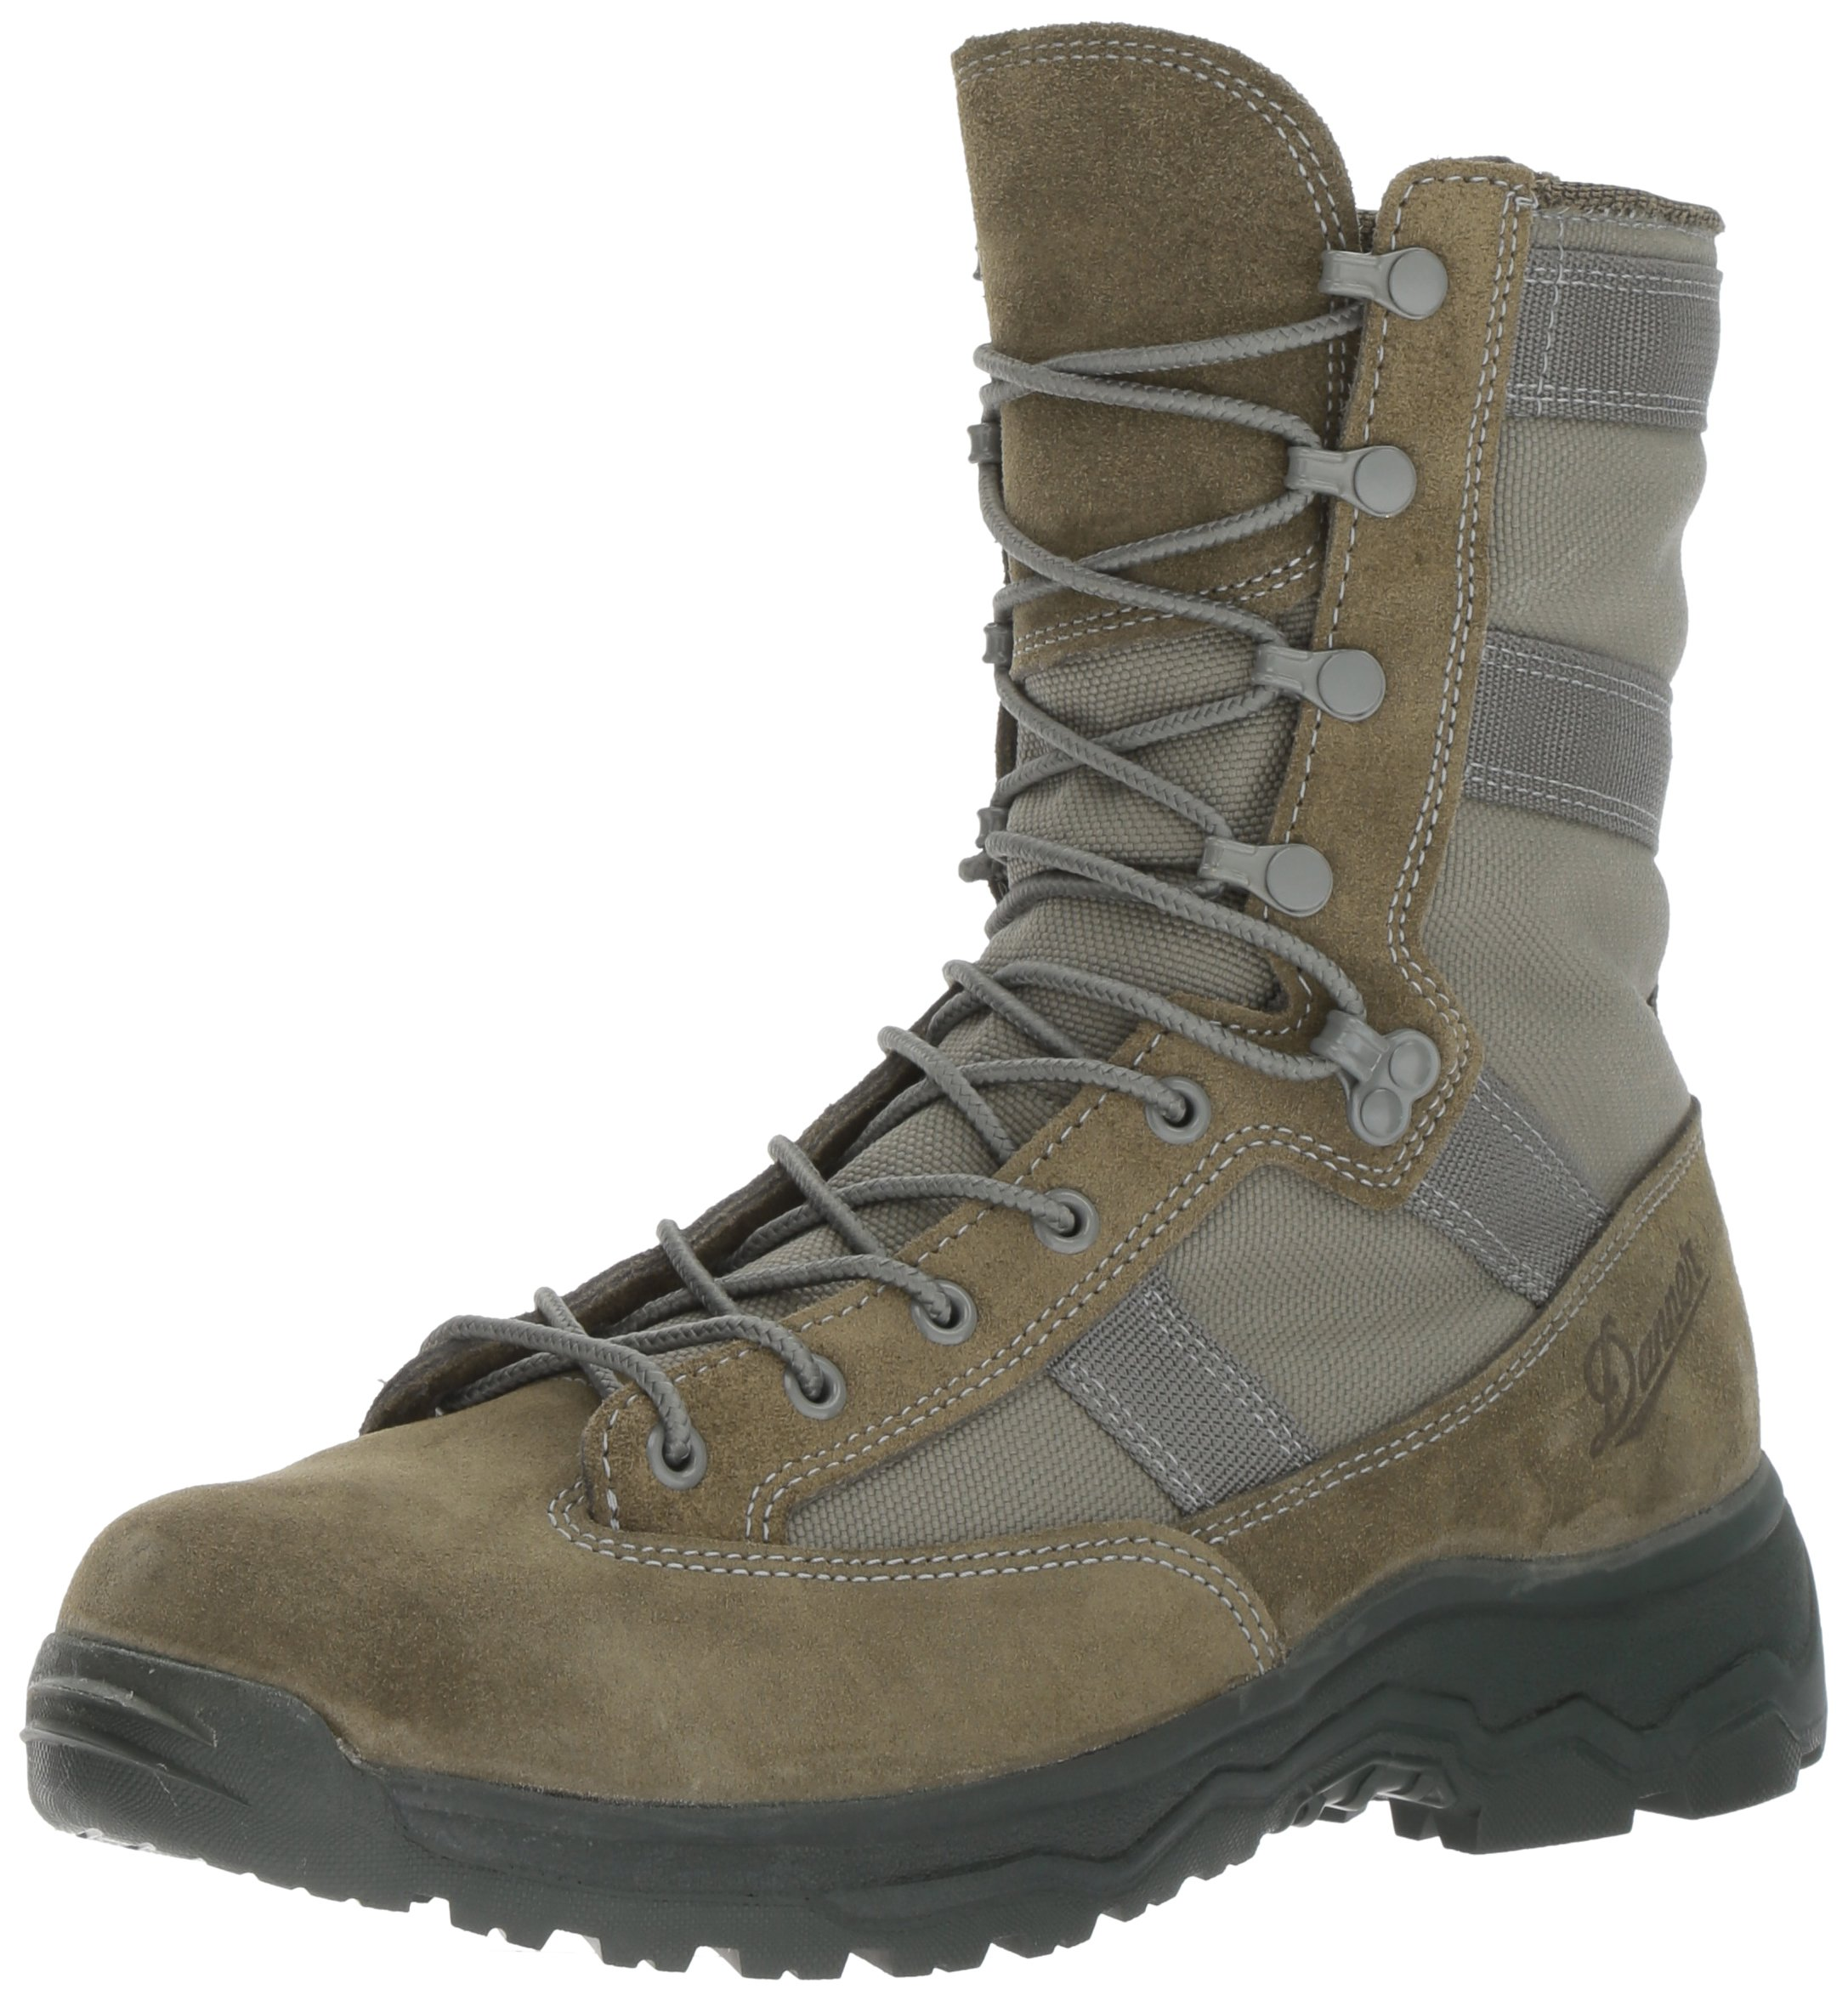 Danner Men's Reckoning 8'' Hot Military and Tactical Boot, Sage, 10 D US